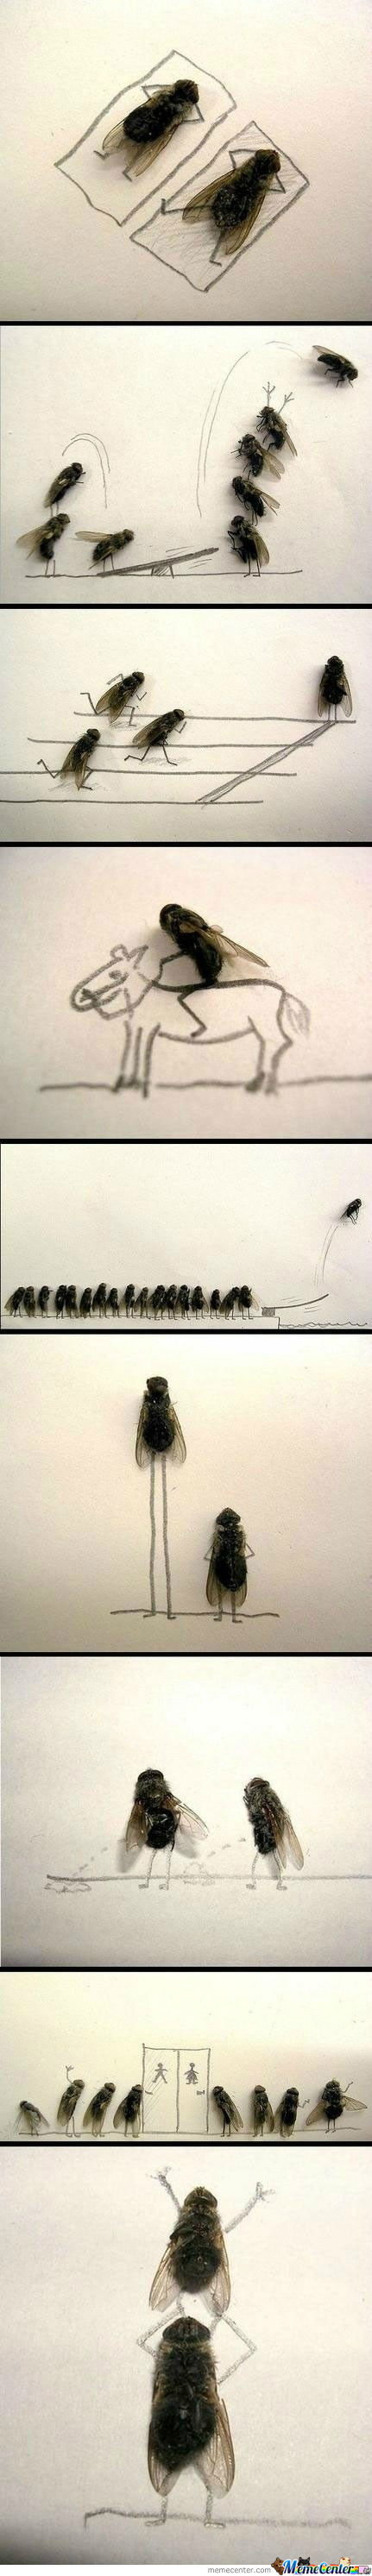 Dead Fly Art, Never Would Have Thought It's Give Me This Much Joy